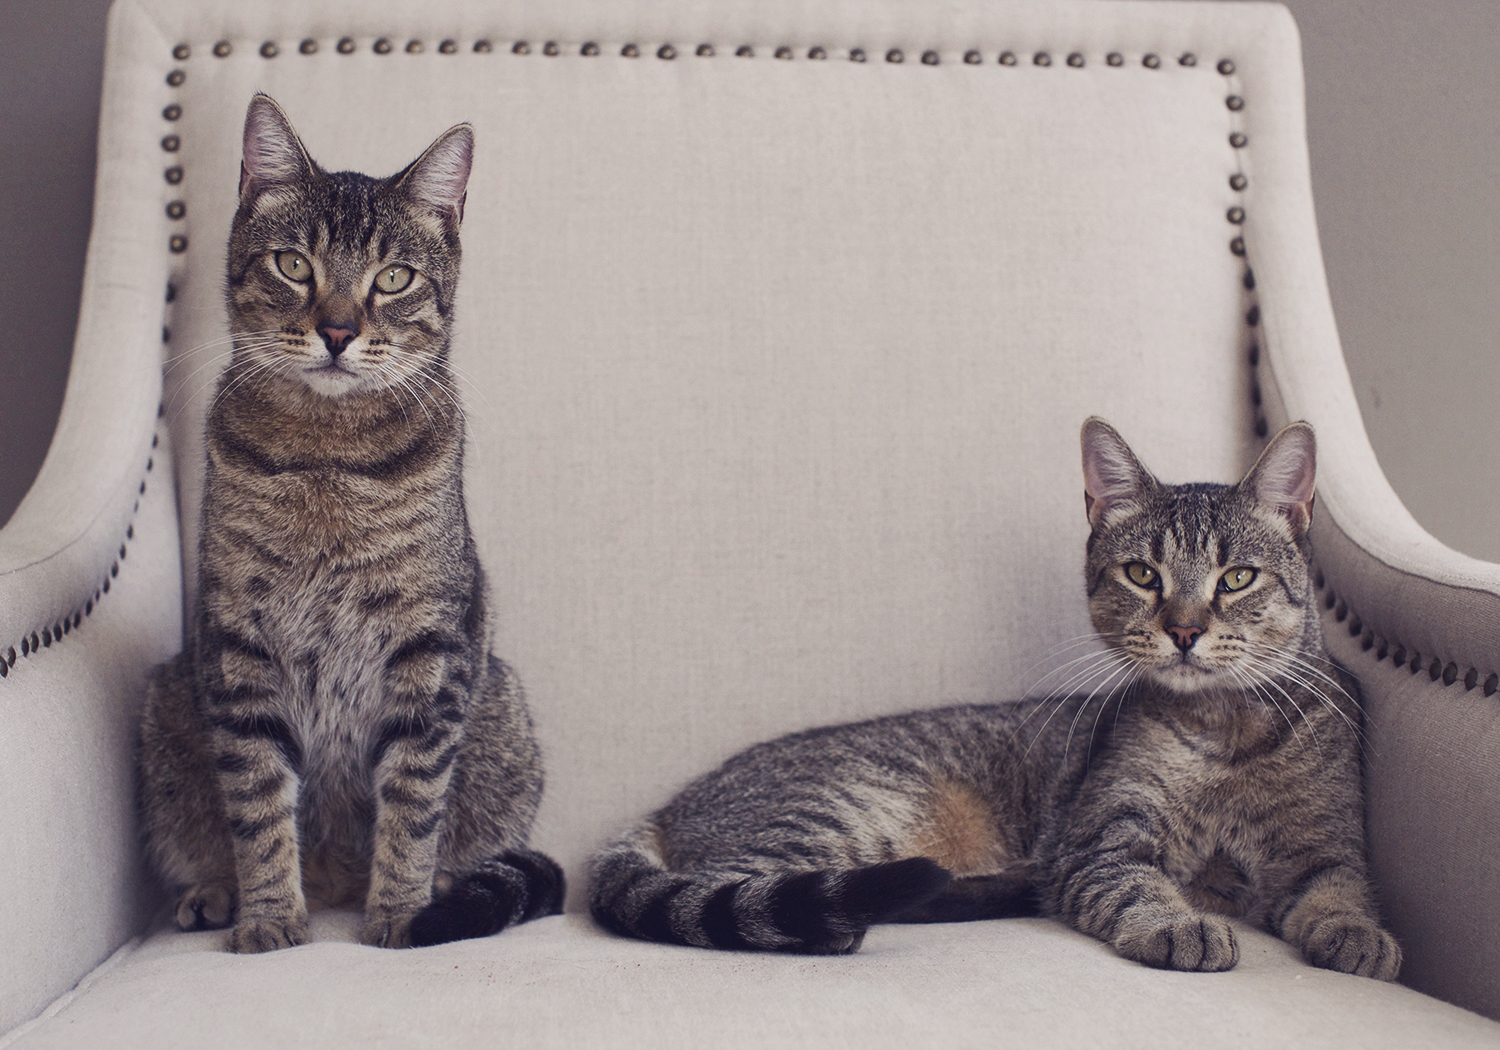 Photographing Cats - Tips and tricks when working with different cat personalities.